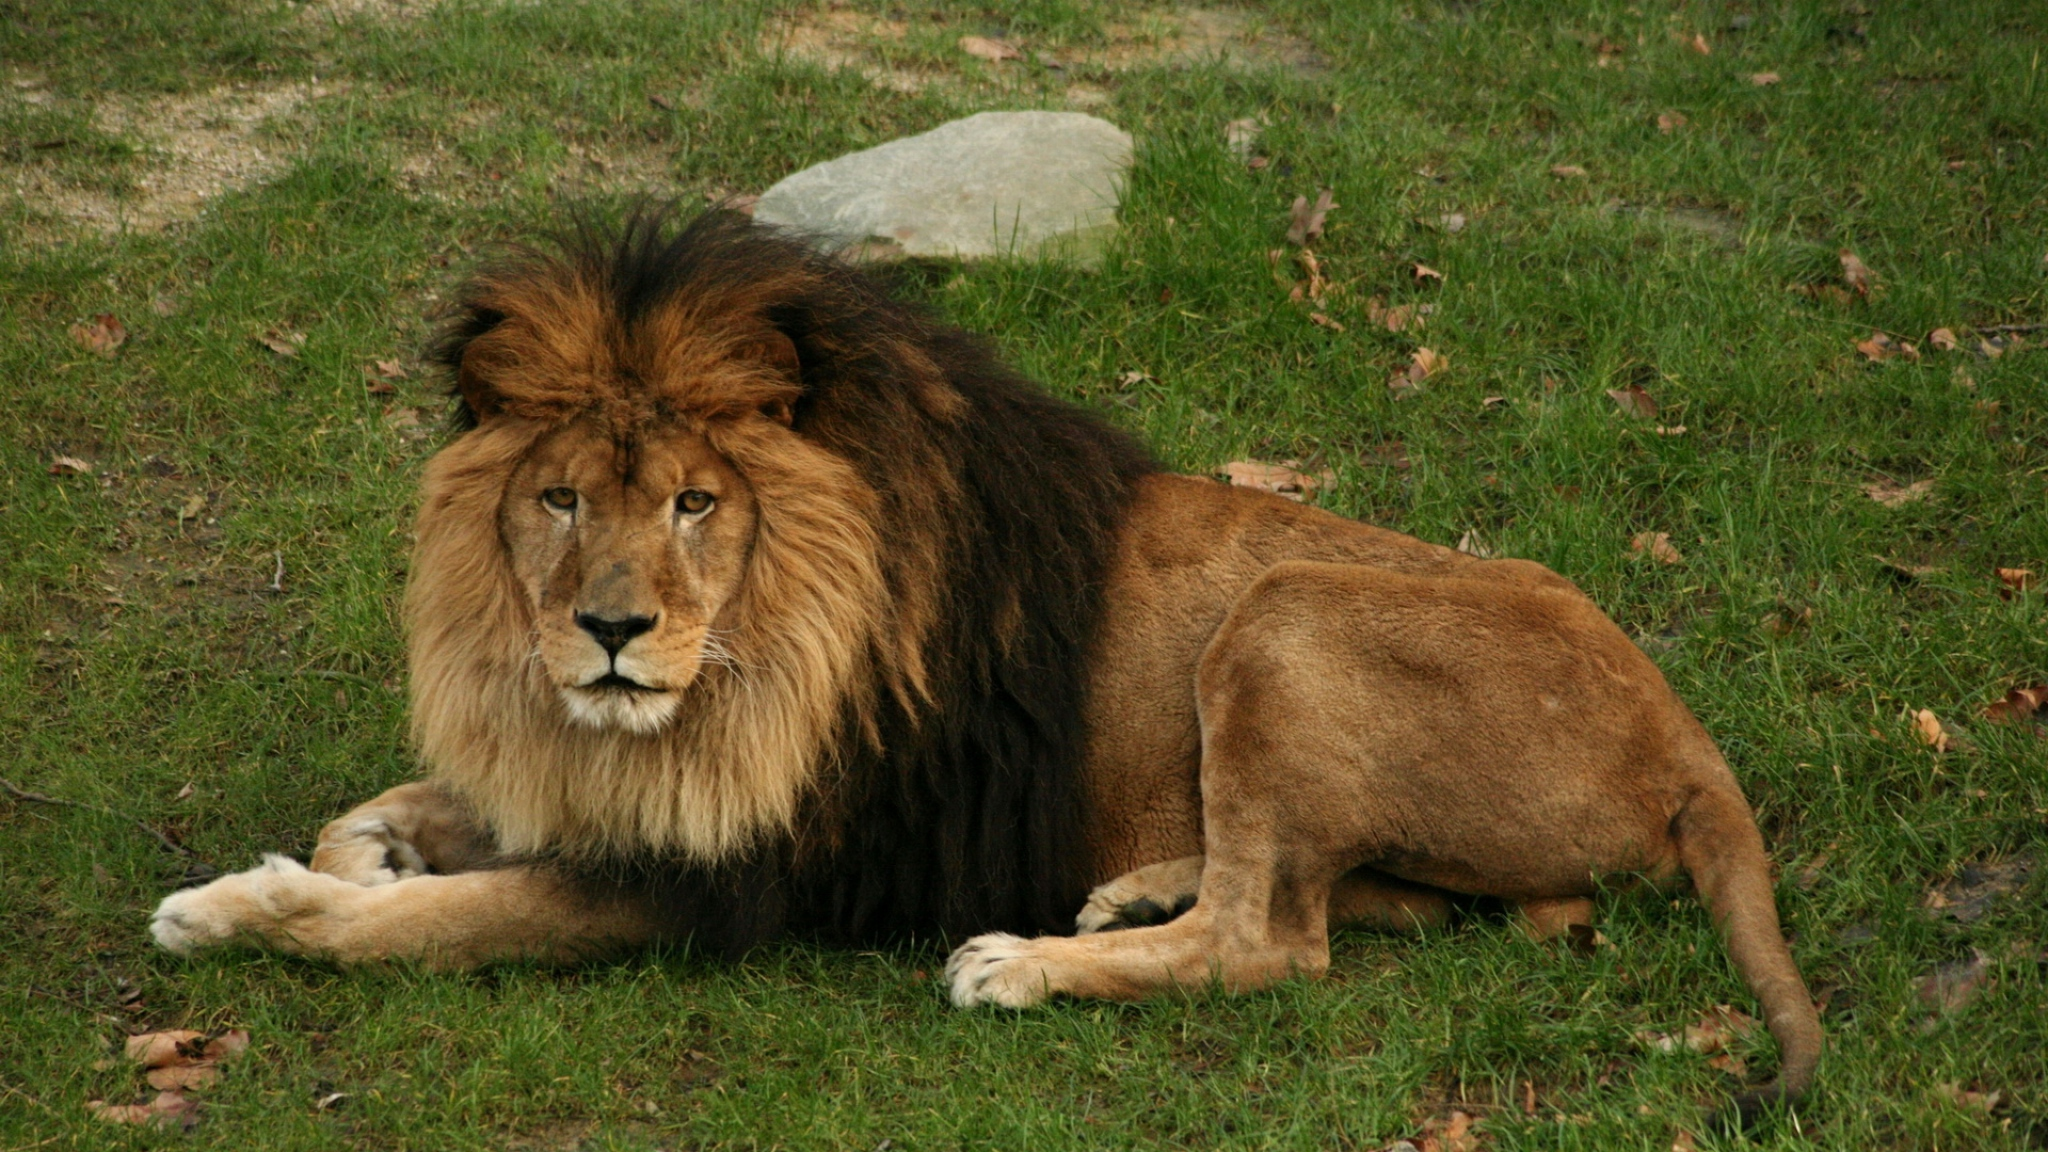 2048x1152 Wallpaper lion, lying, grass, mane, big cat, predator